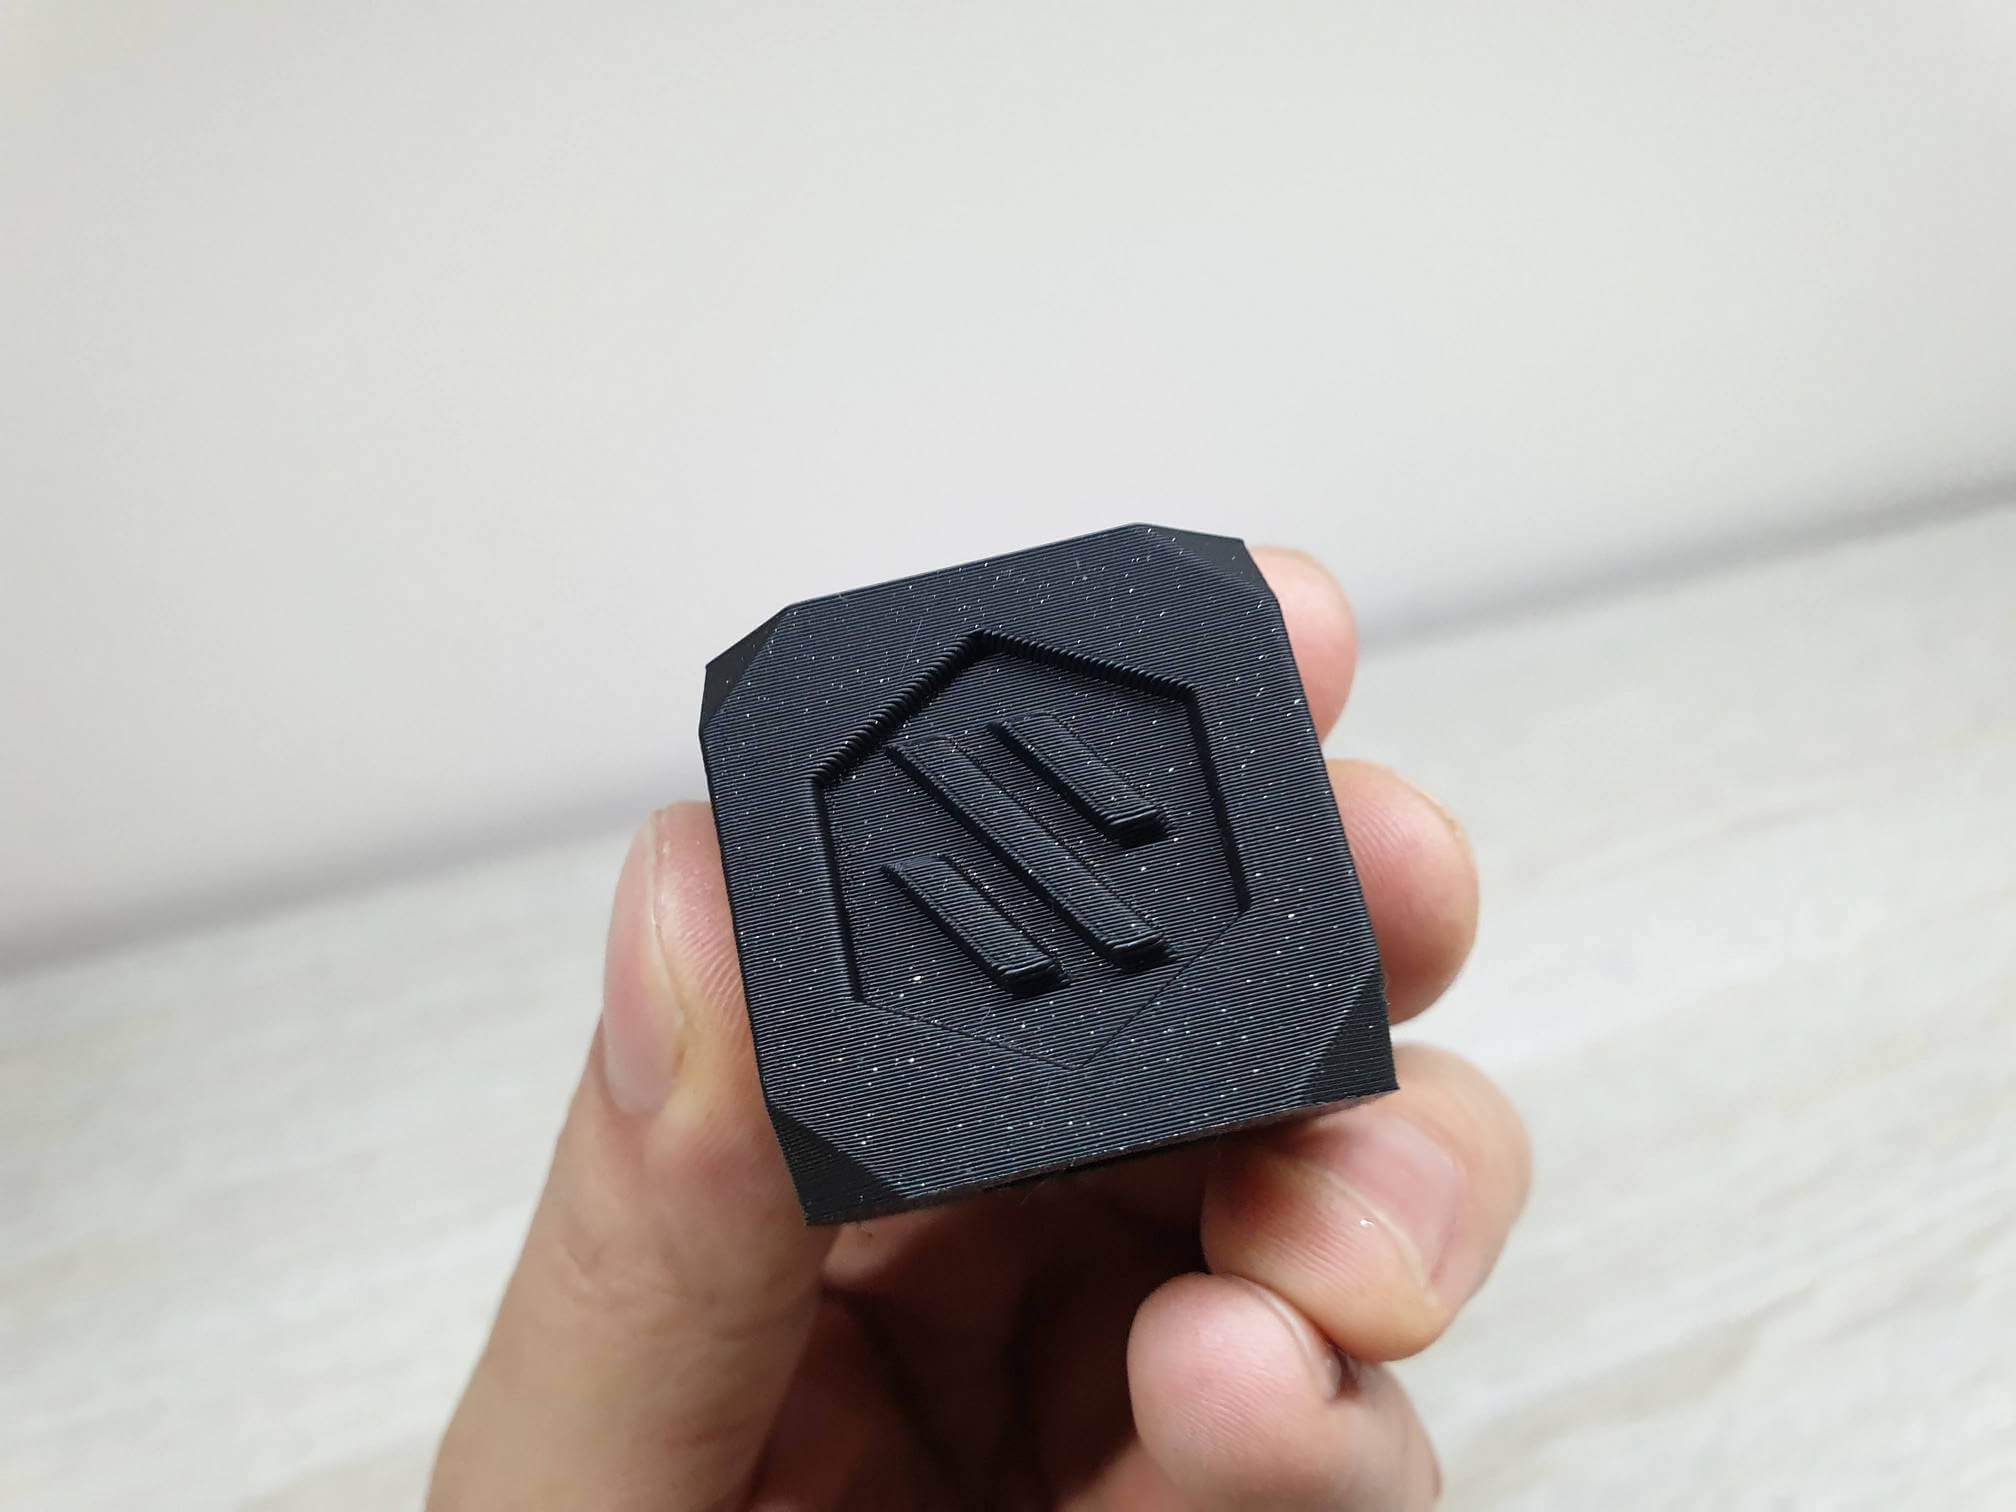 Voron Cube printed on Sapphire Plus